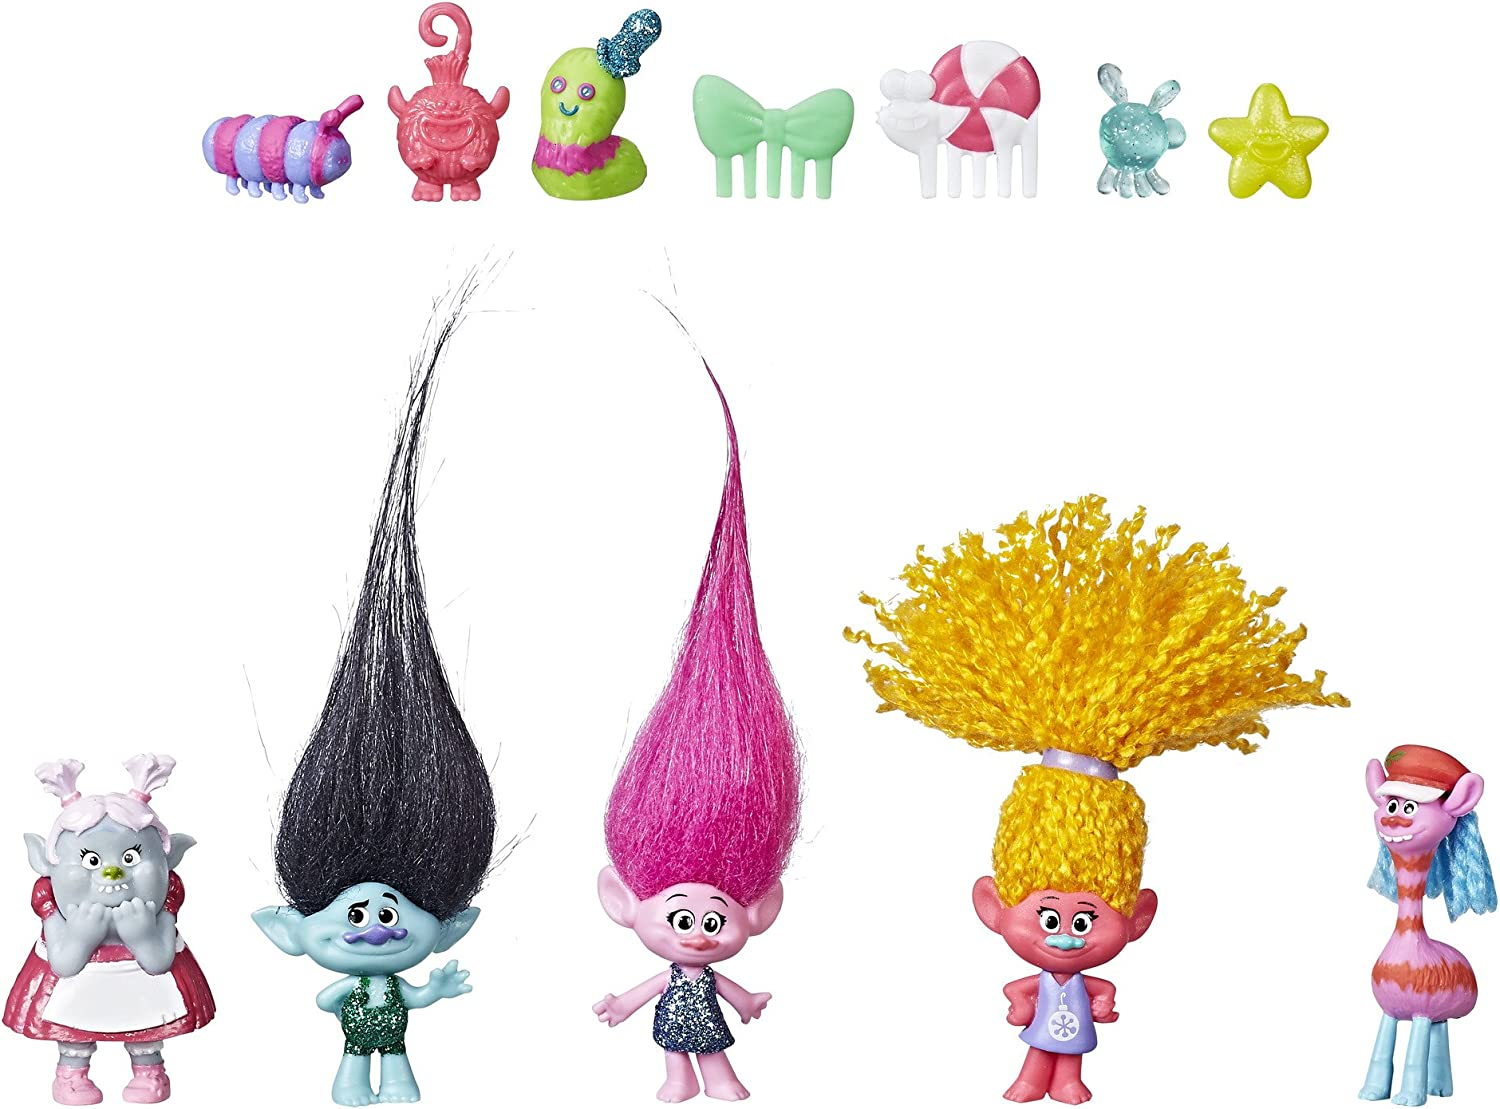 Trolls Series 6 Blind Bag Holiday Lote De 6